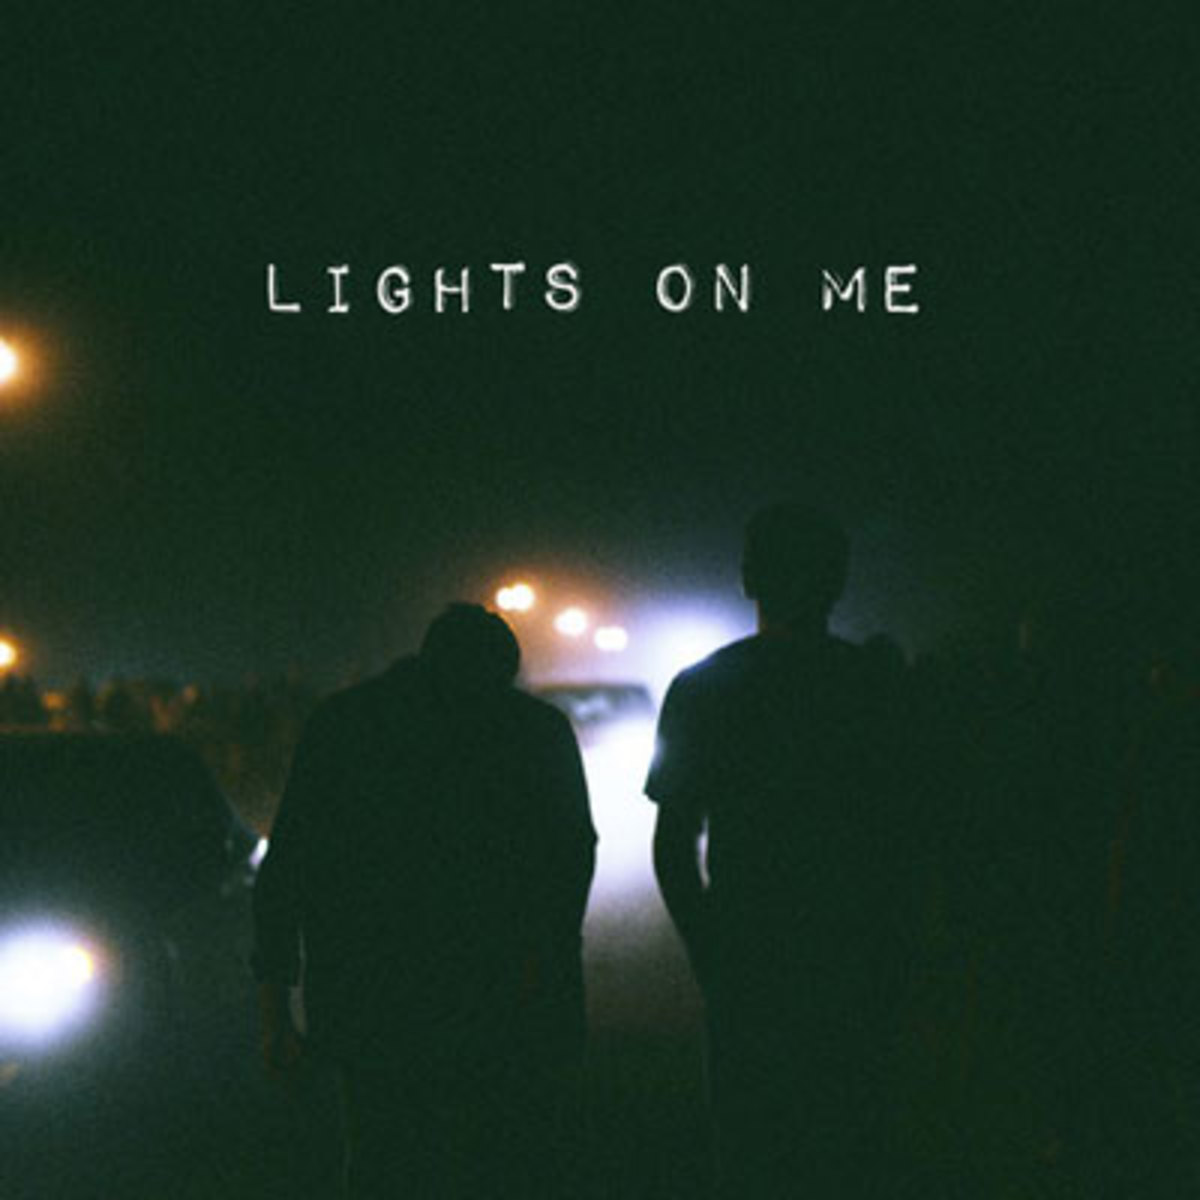 ivanb-lightsonme.jpg